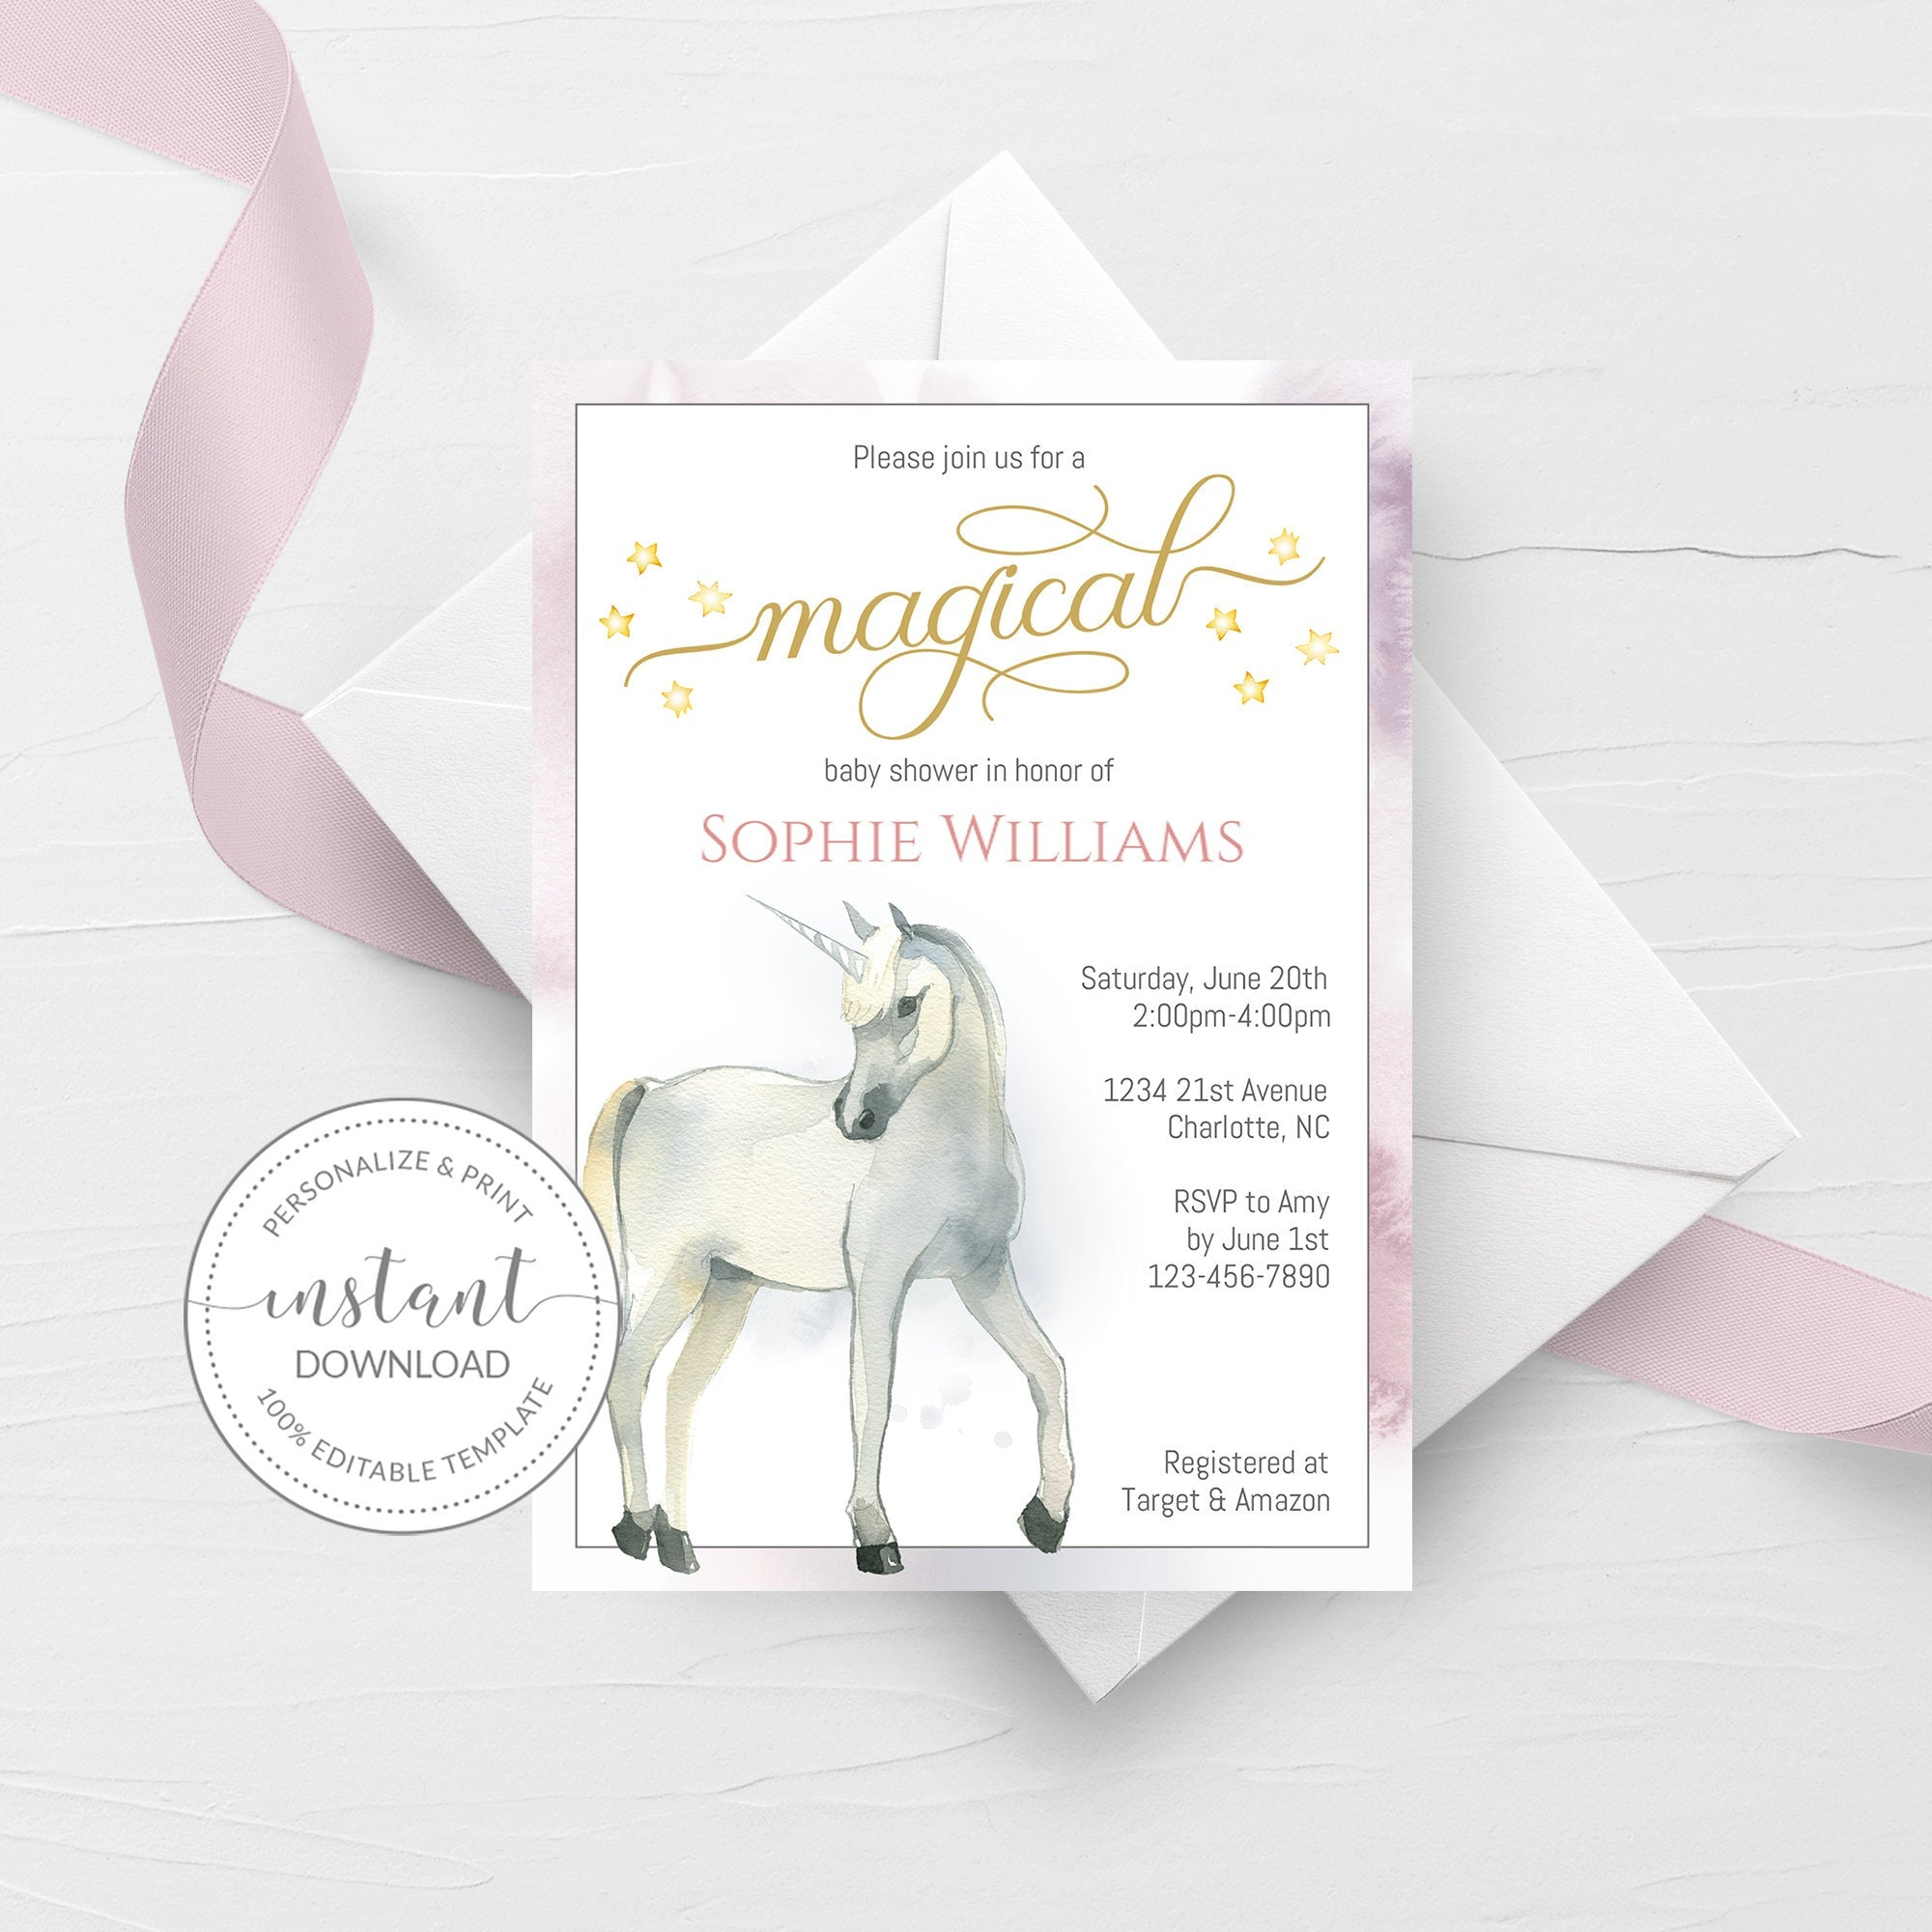 Unicorn Baby Shower Invitation Template, Unicorn Baby Shower Invite Printable, Editable DIGITAL DOWNLOAD - D200